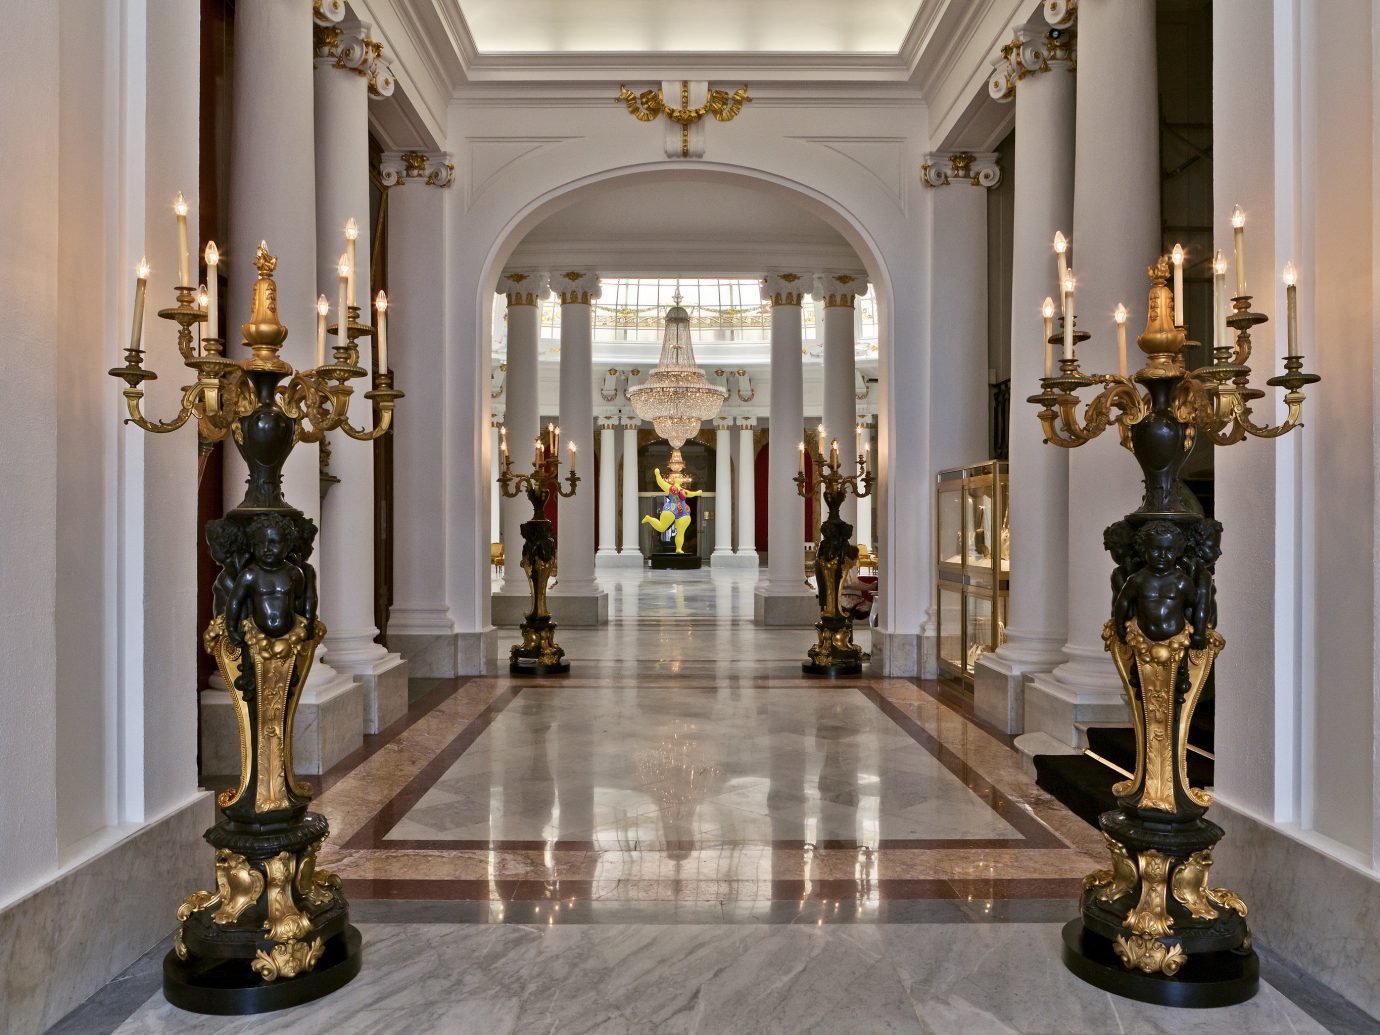 Hotels indoor wall room palace interior design Lobby estate altar mansion fancy hall decorated